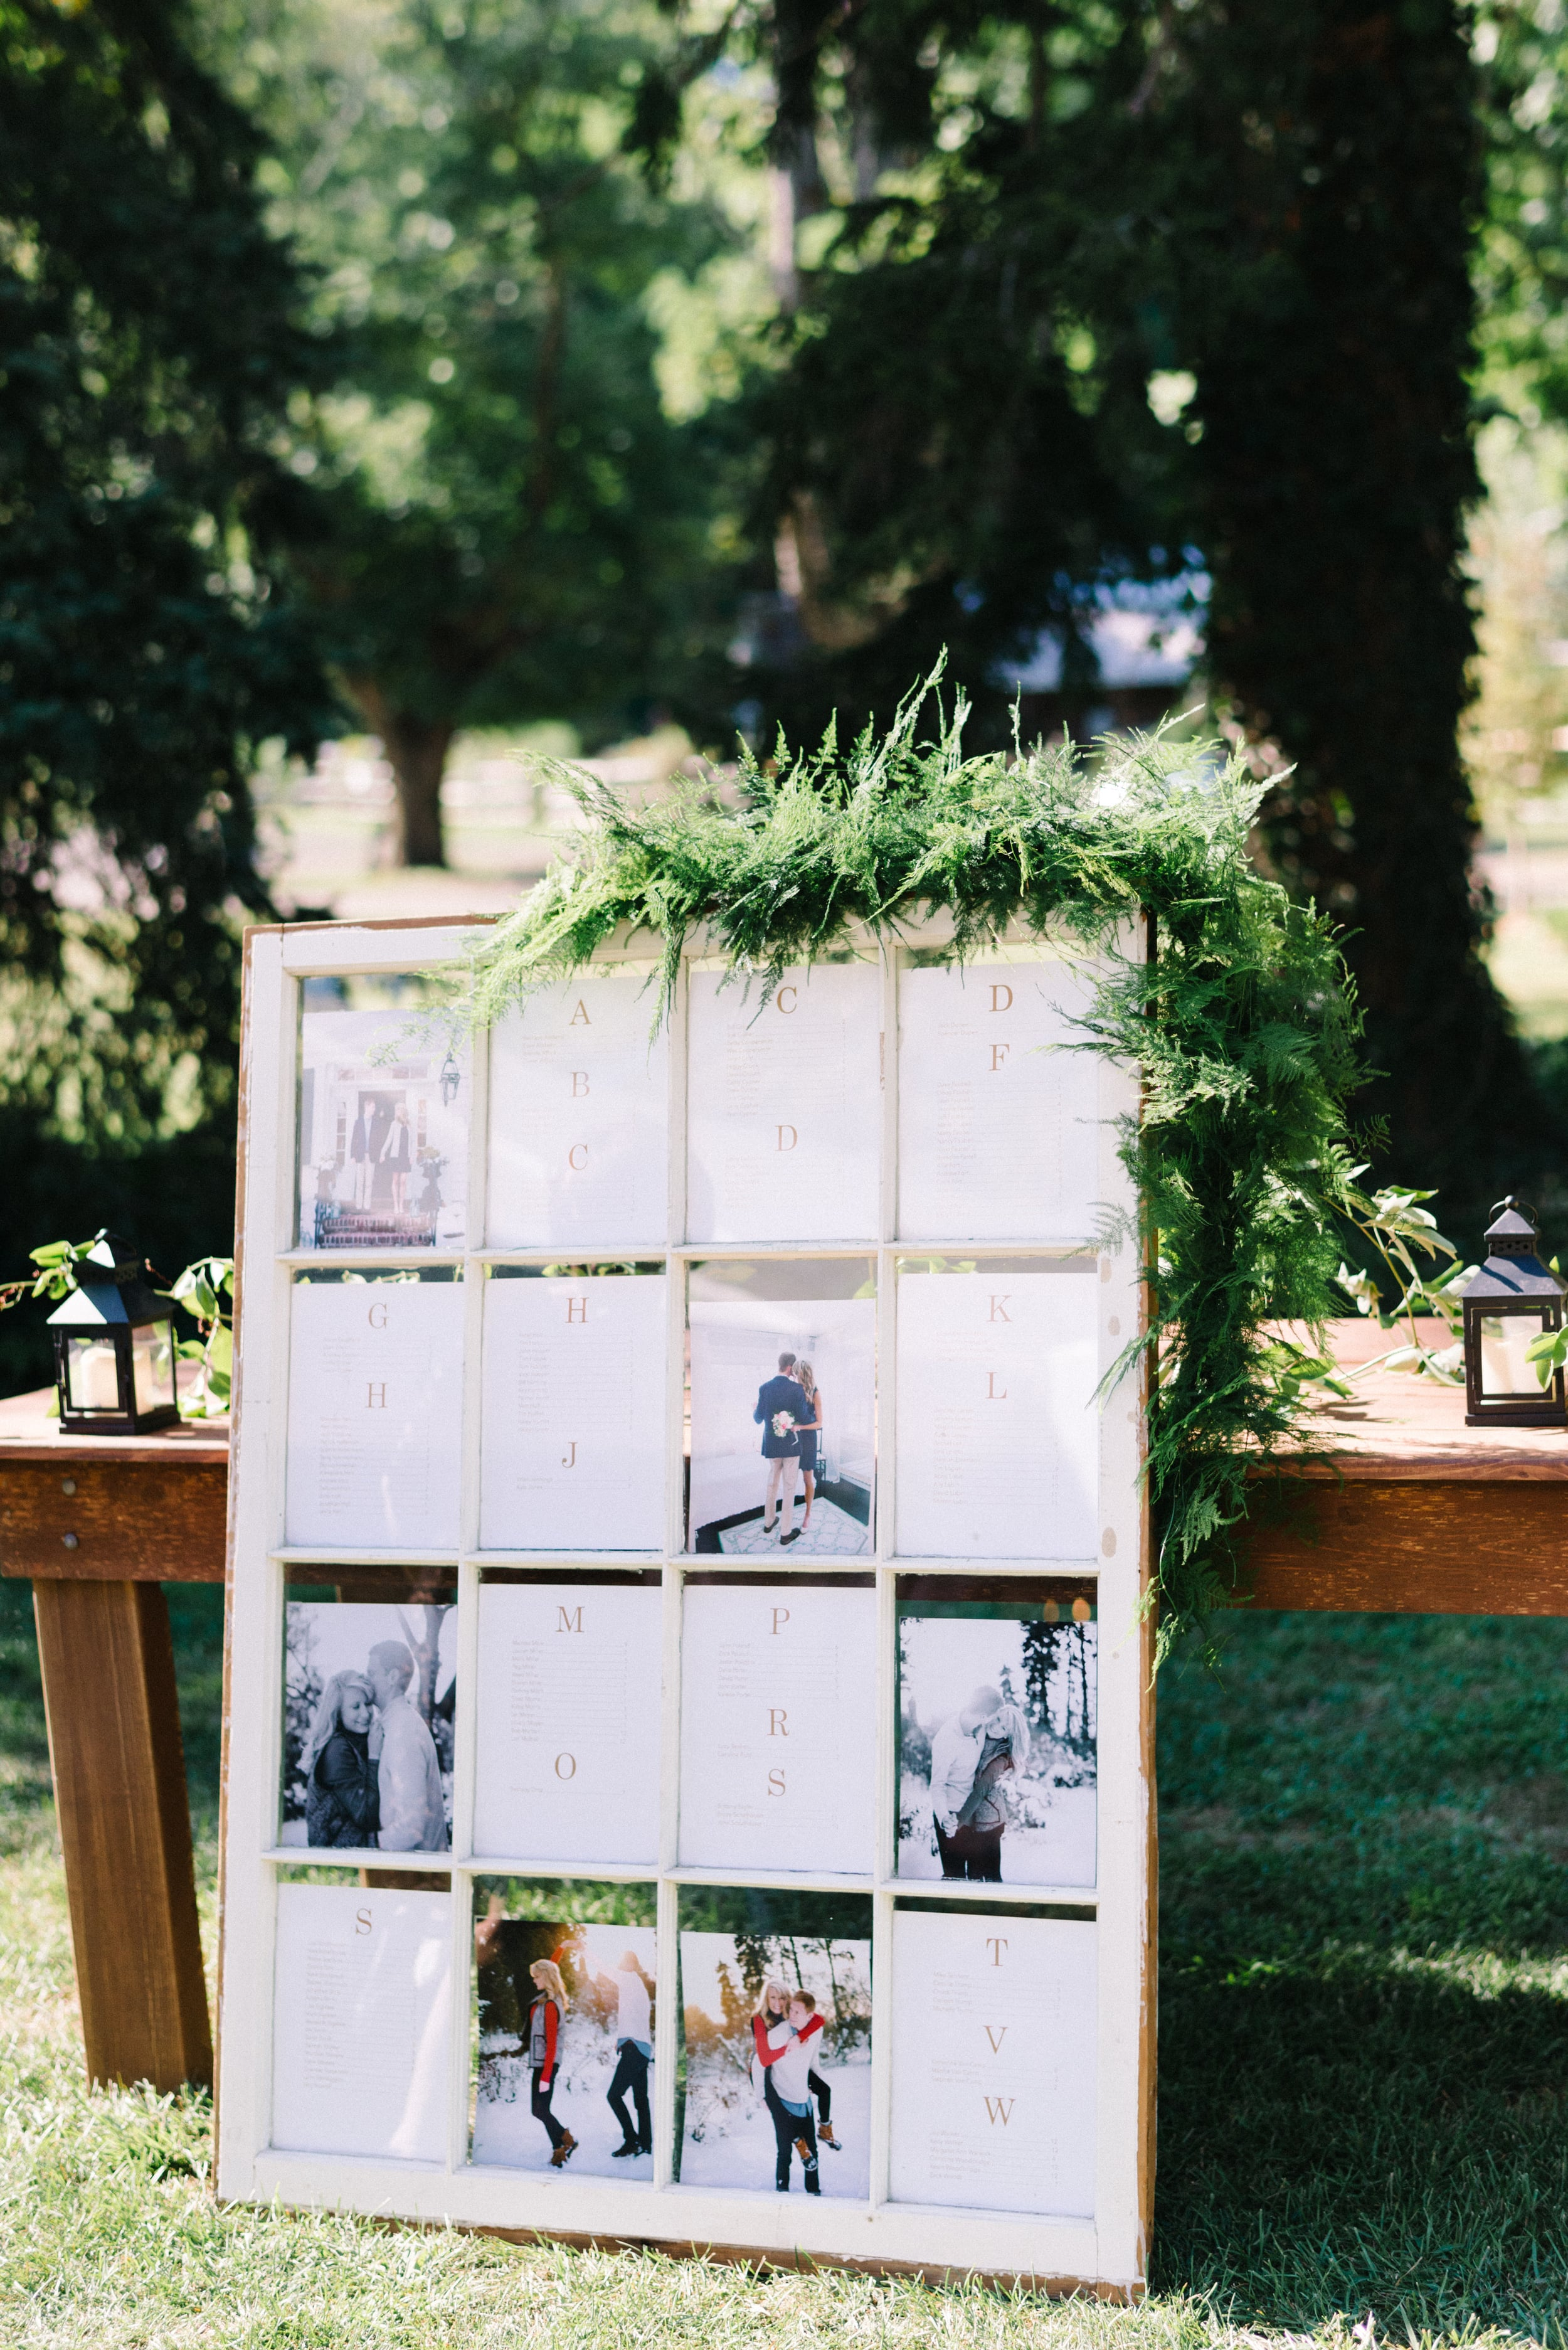 A Garden Party Florist, Inn at Fernbrook Farms, Michelle Lange Photography, Blush, Seating Chart, Window Pane